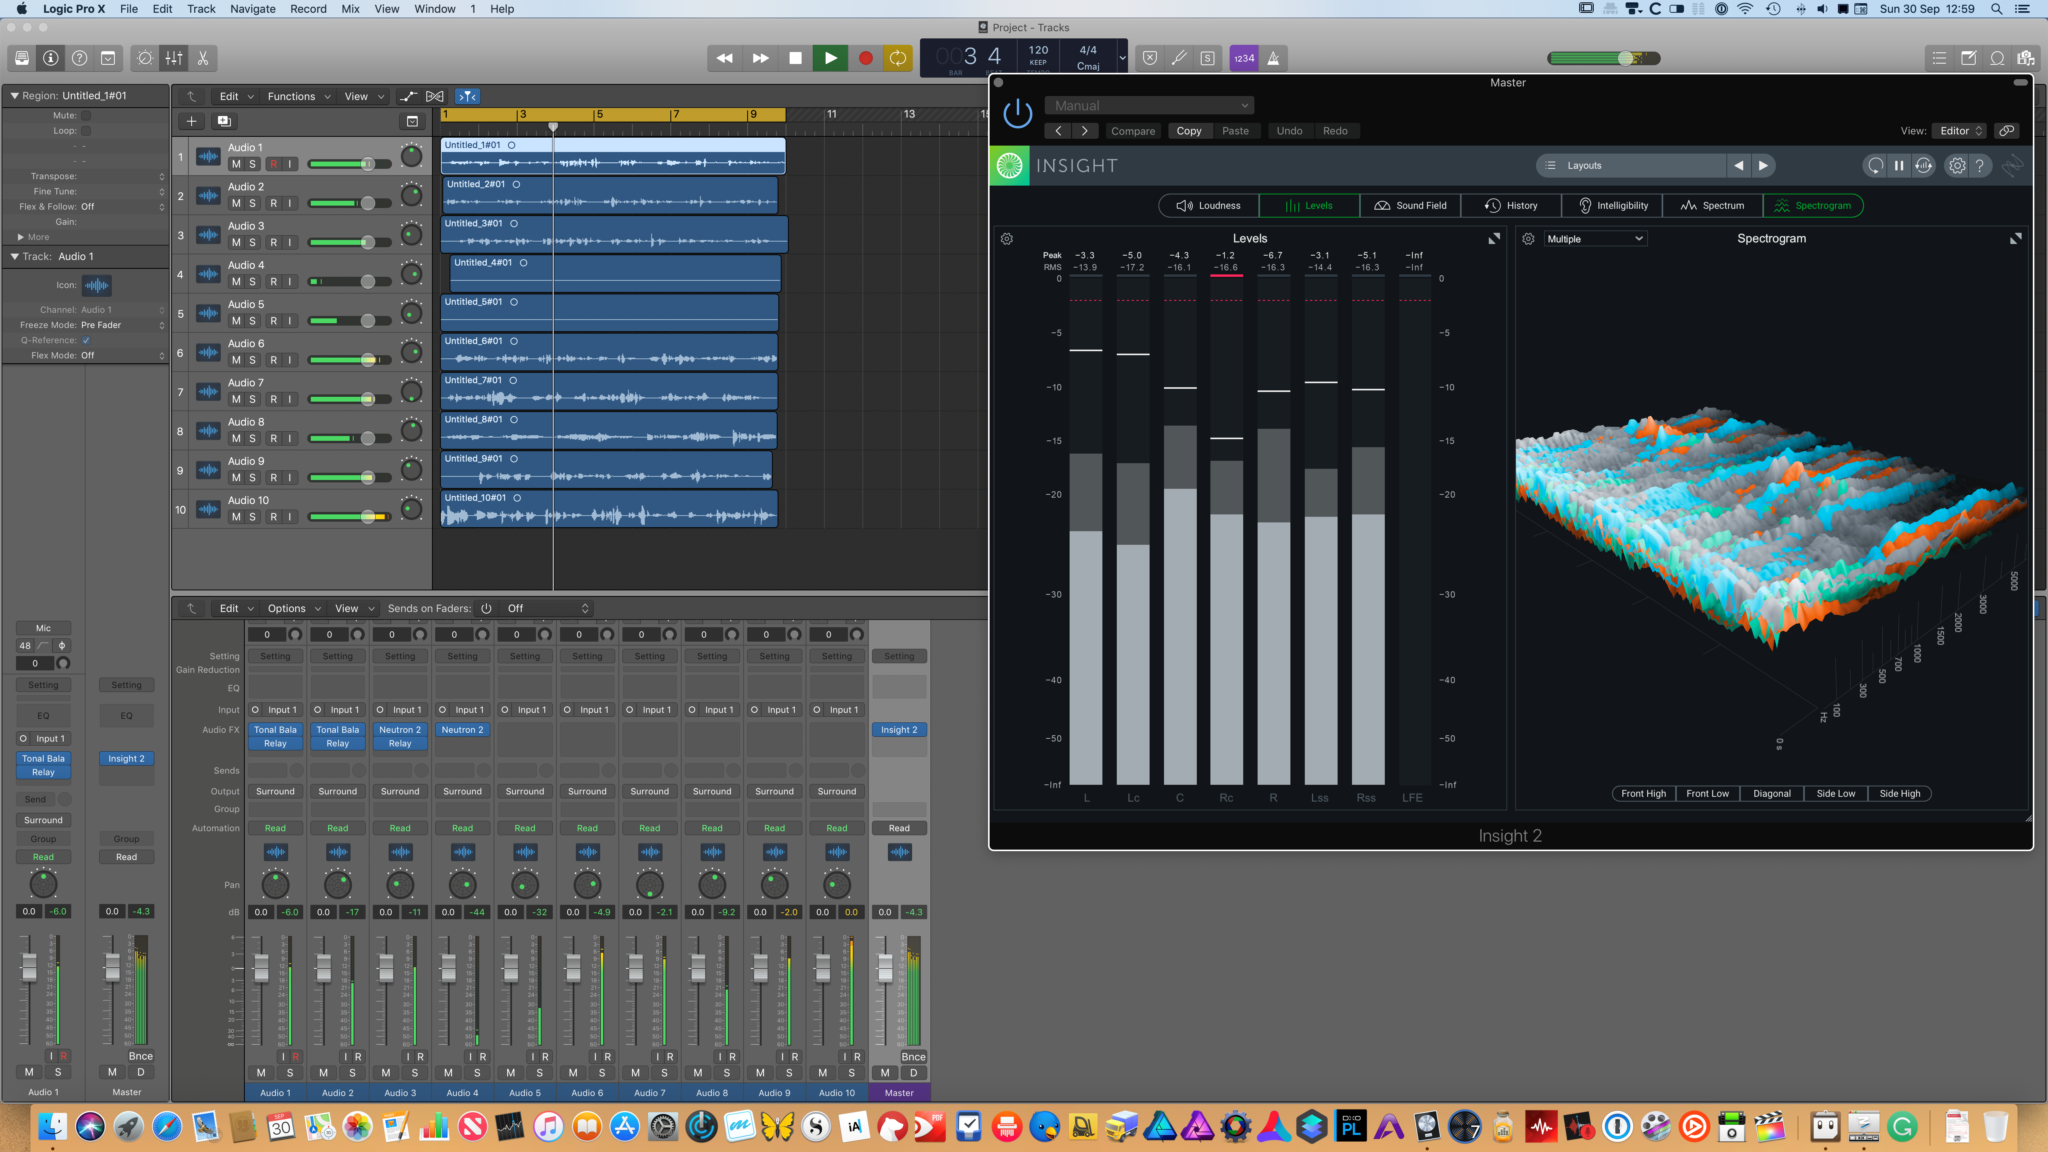 Izotope rx 7 download mac torrent